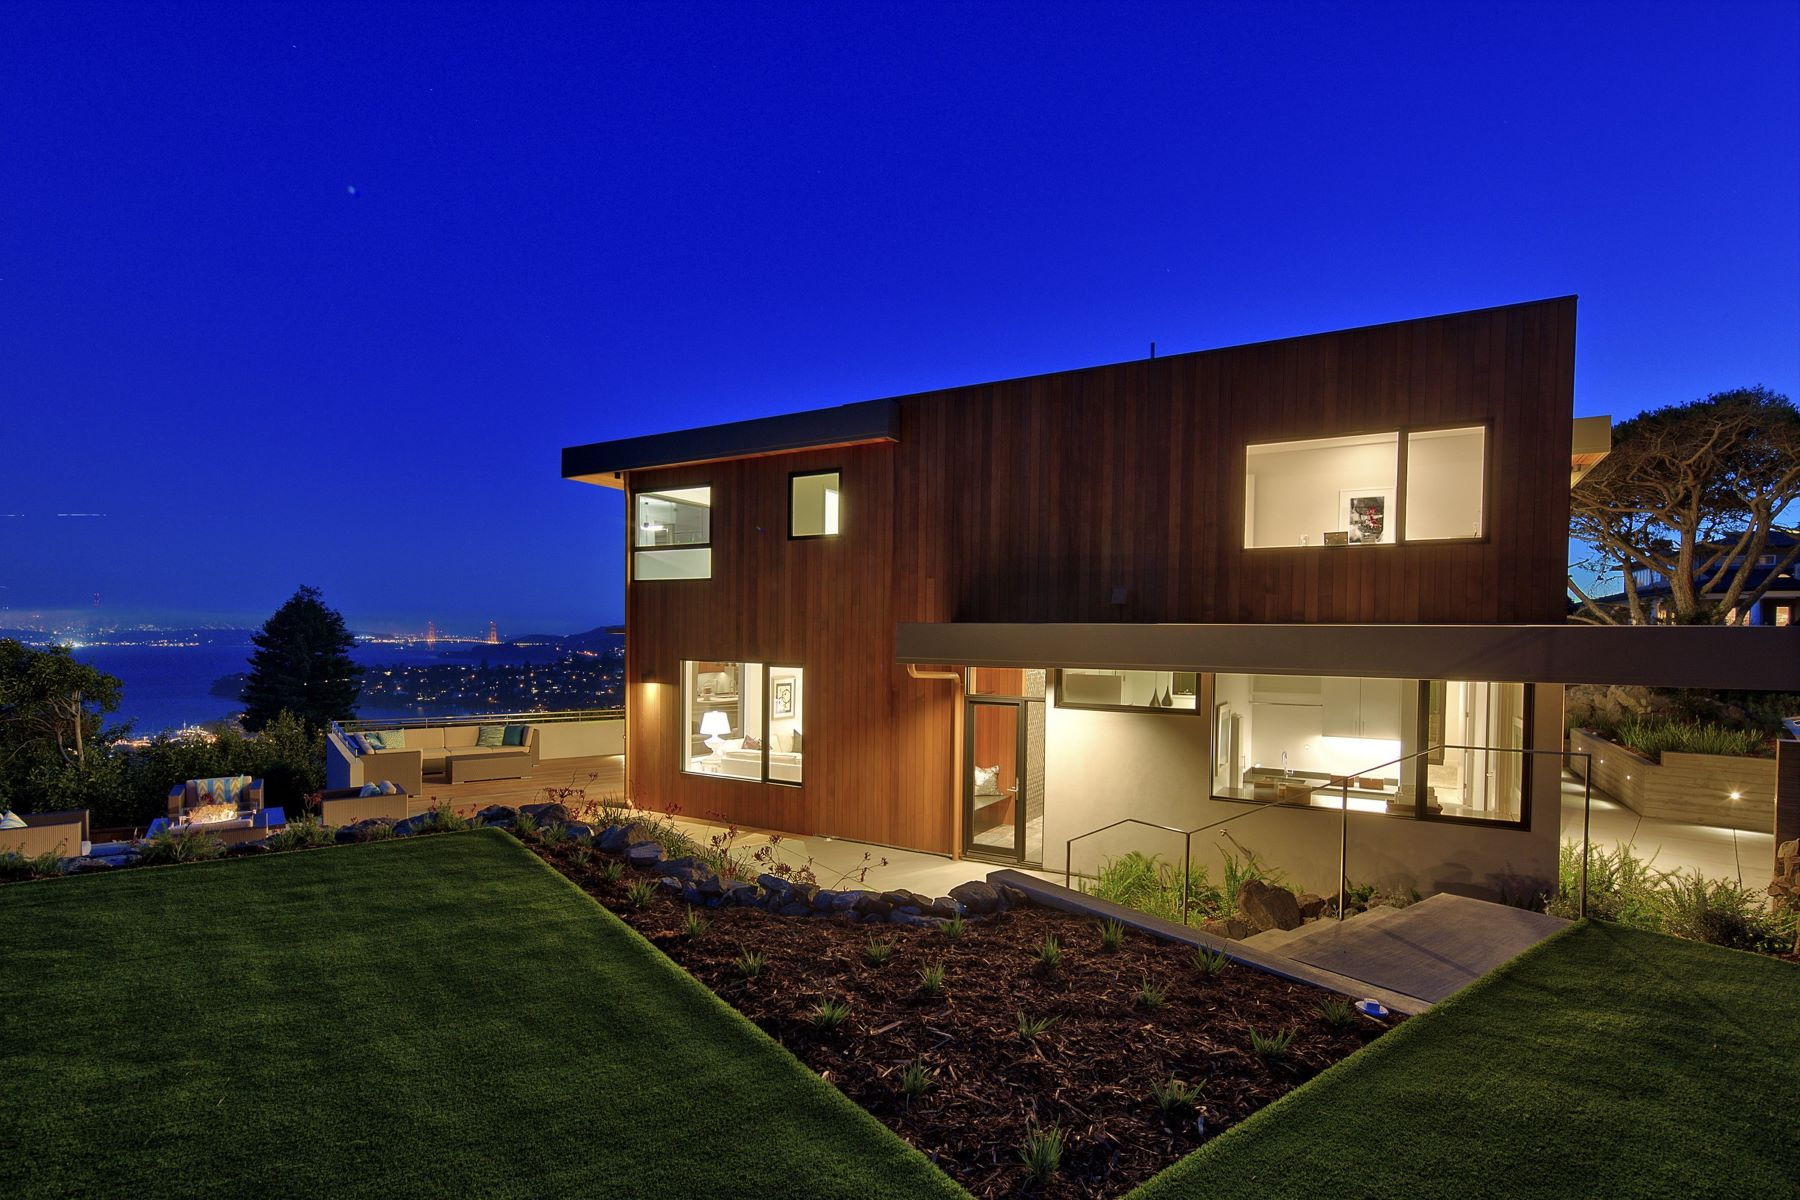 Single Family Home for Sale at Spectacular Ultra Contemporary Home 86 Sugarloaf Dr Tiburon, California, 94920 United States